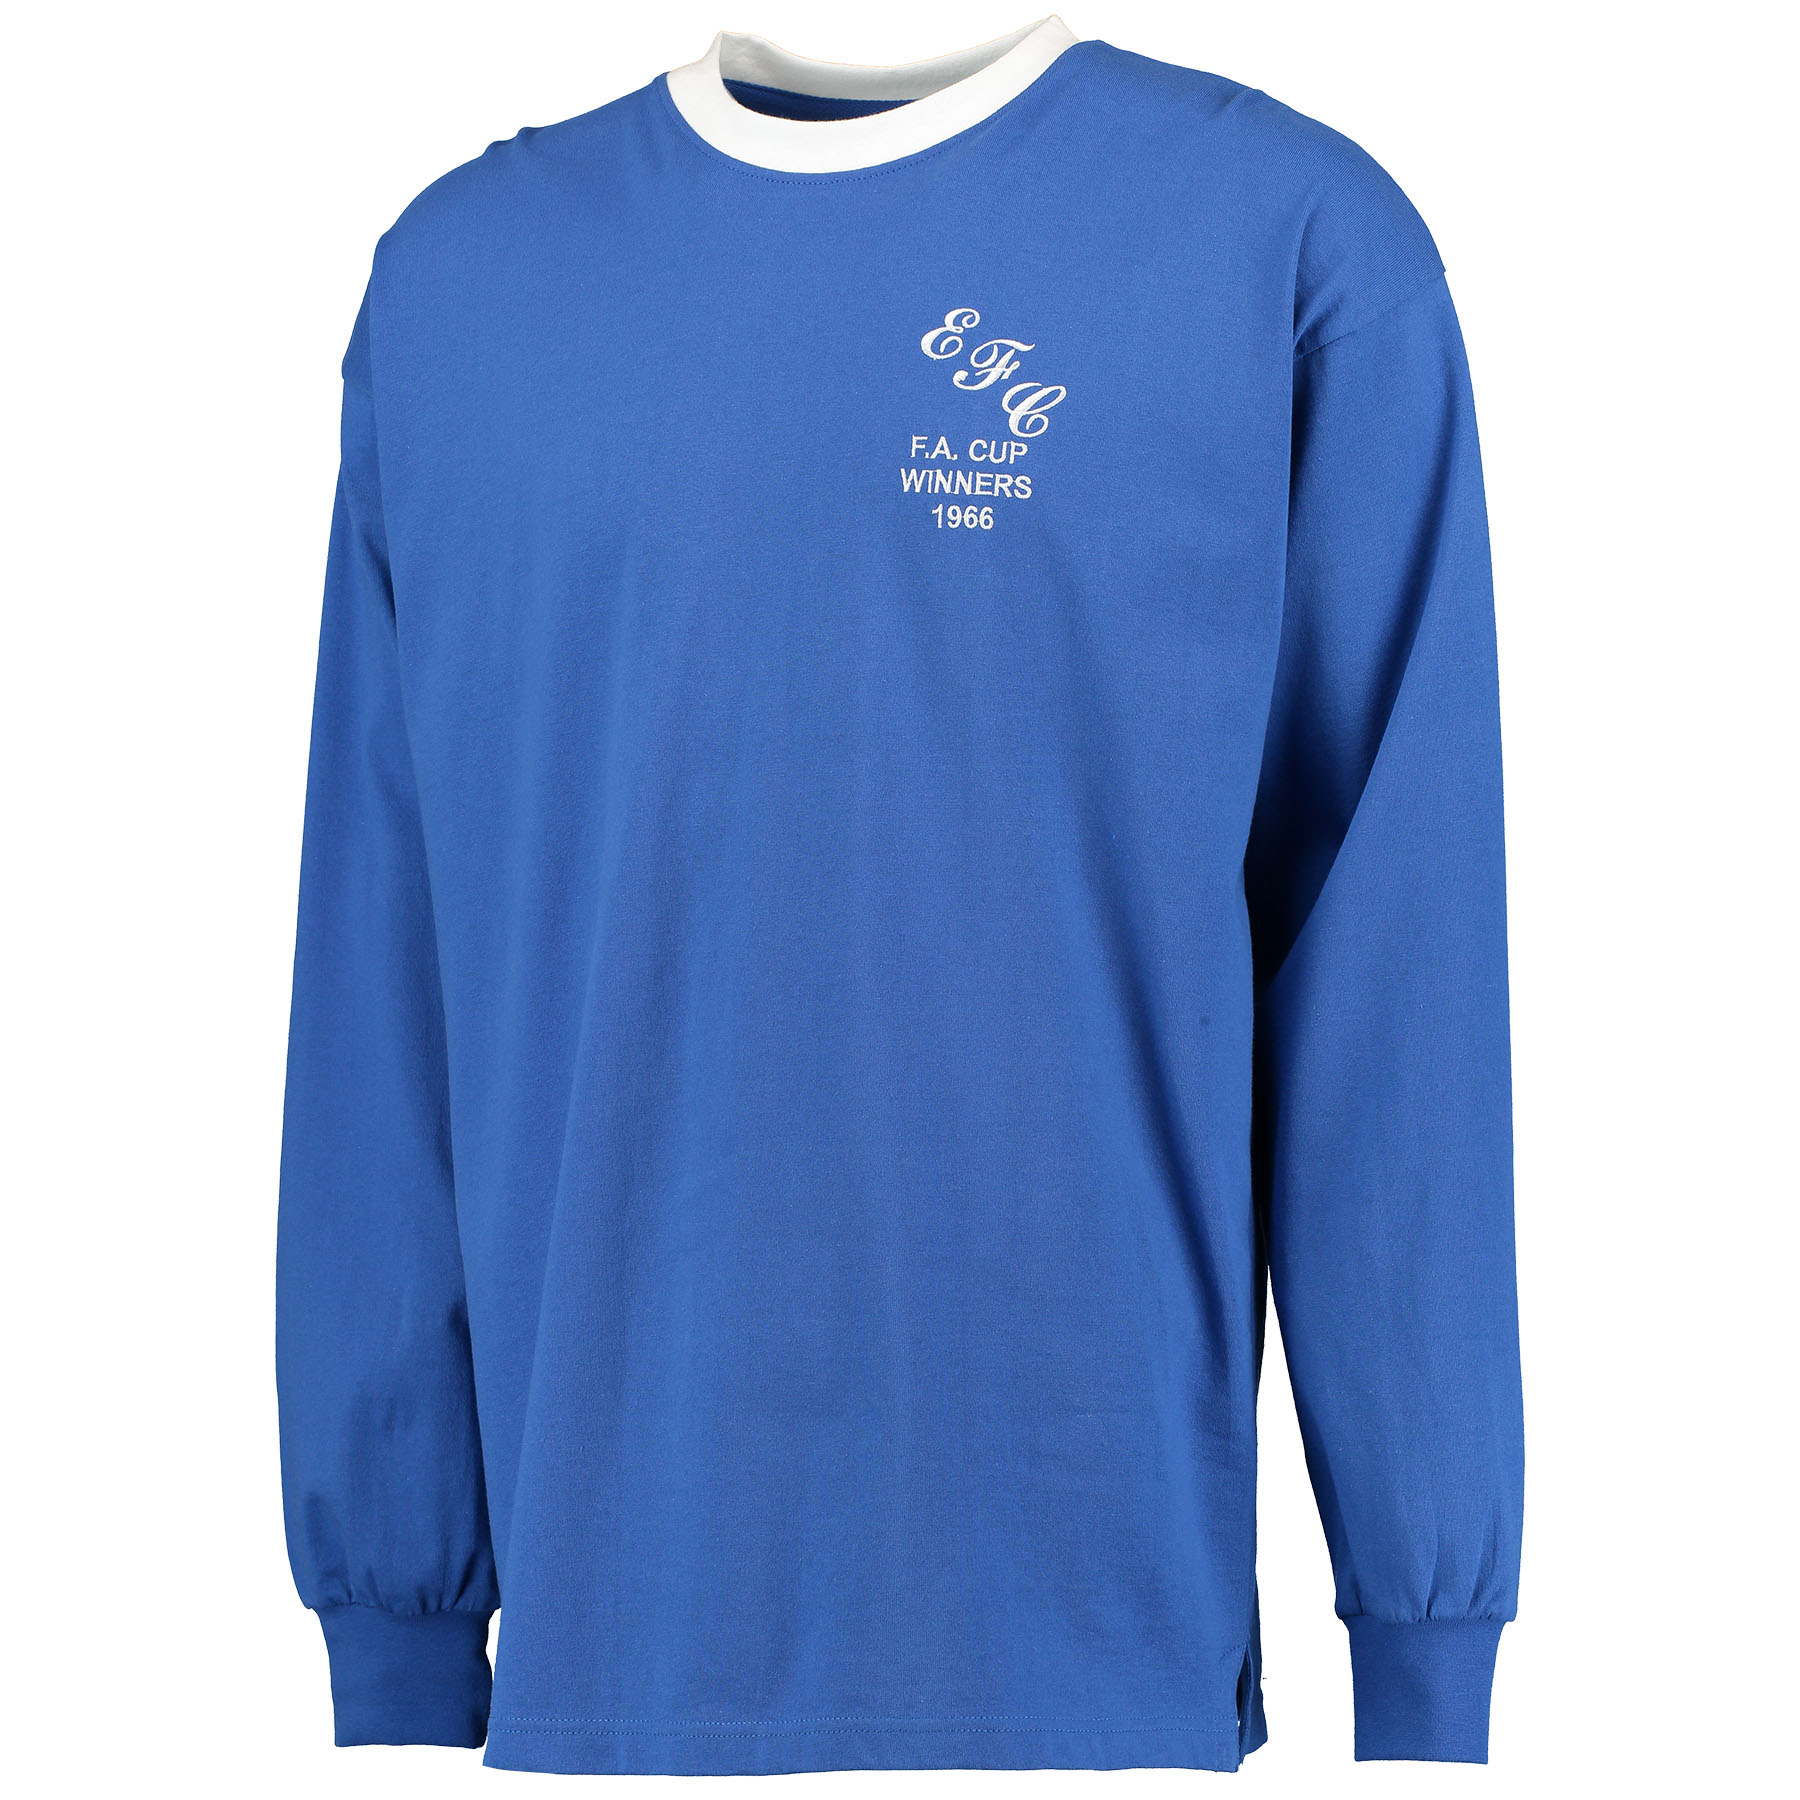 Everton 1966 FA Cup Winners Shirt - Blue